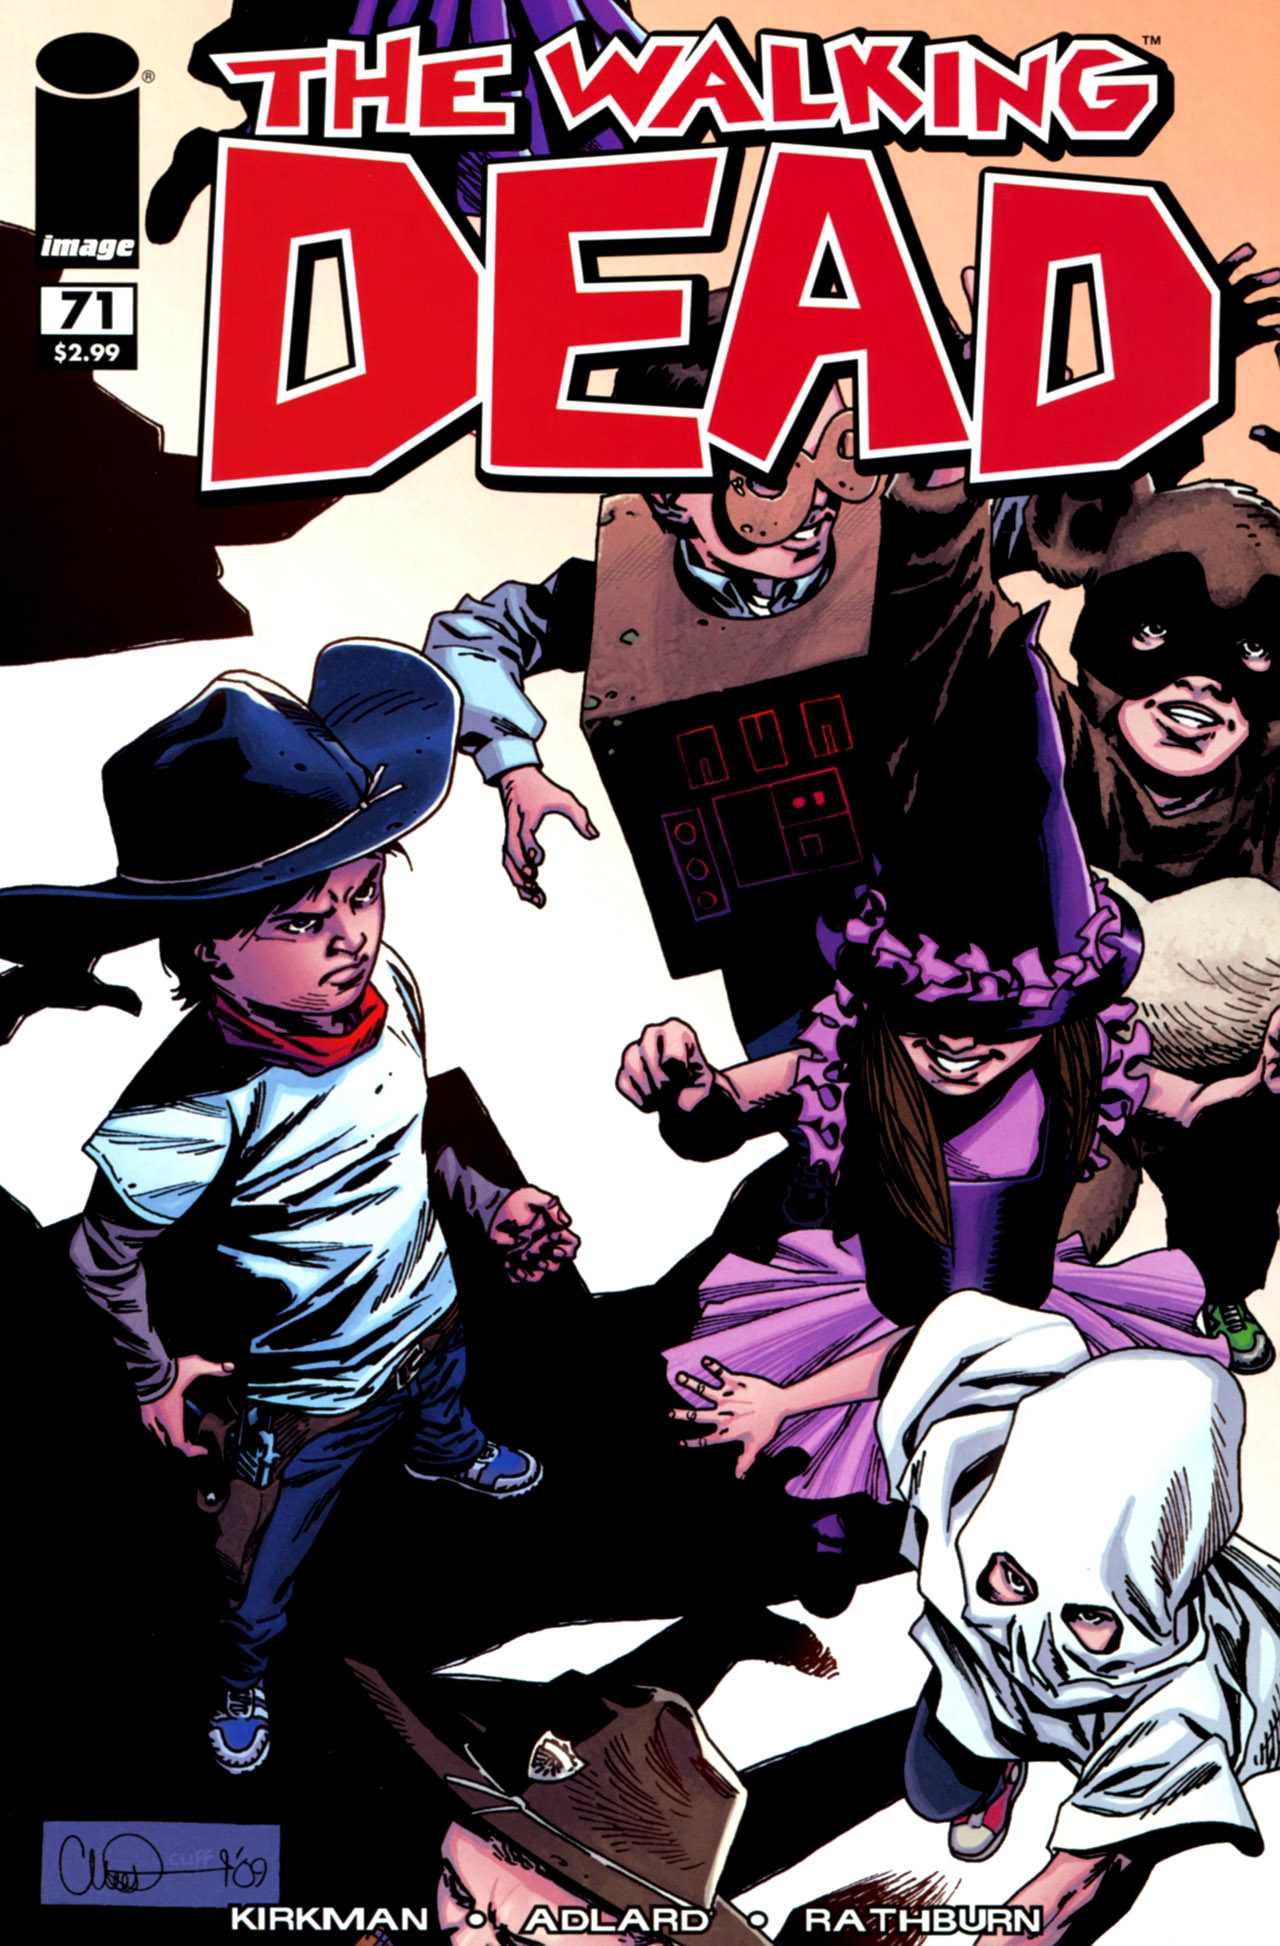 http://images1.wikia.nocookie.net/__cb20100504093230/imagecomics/images/0/07/The_Walking_Dead_Vol_1_71.jpg